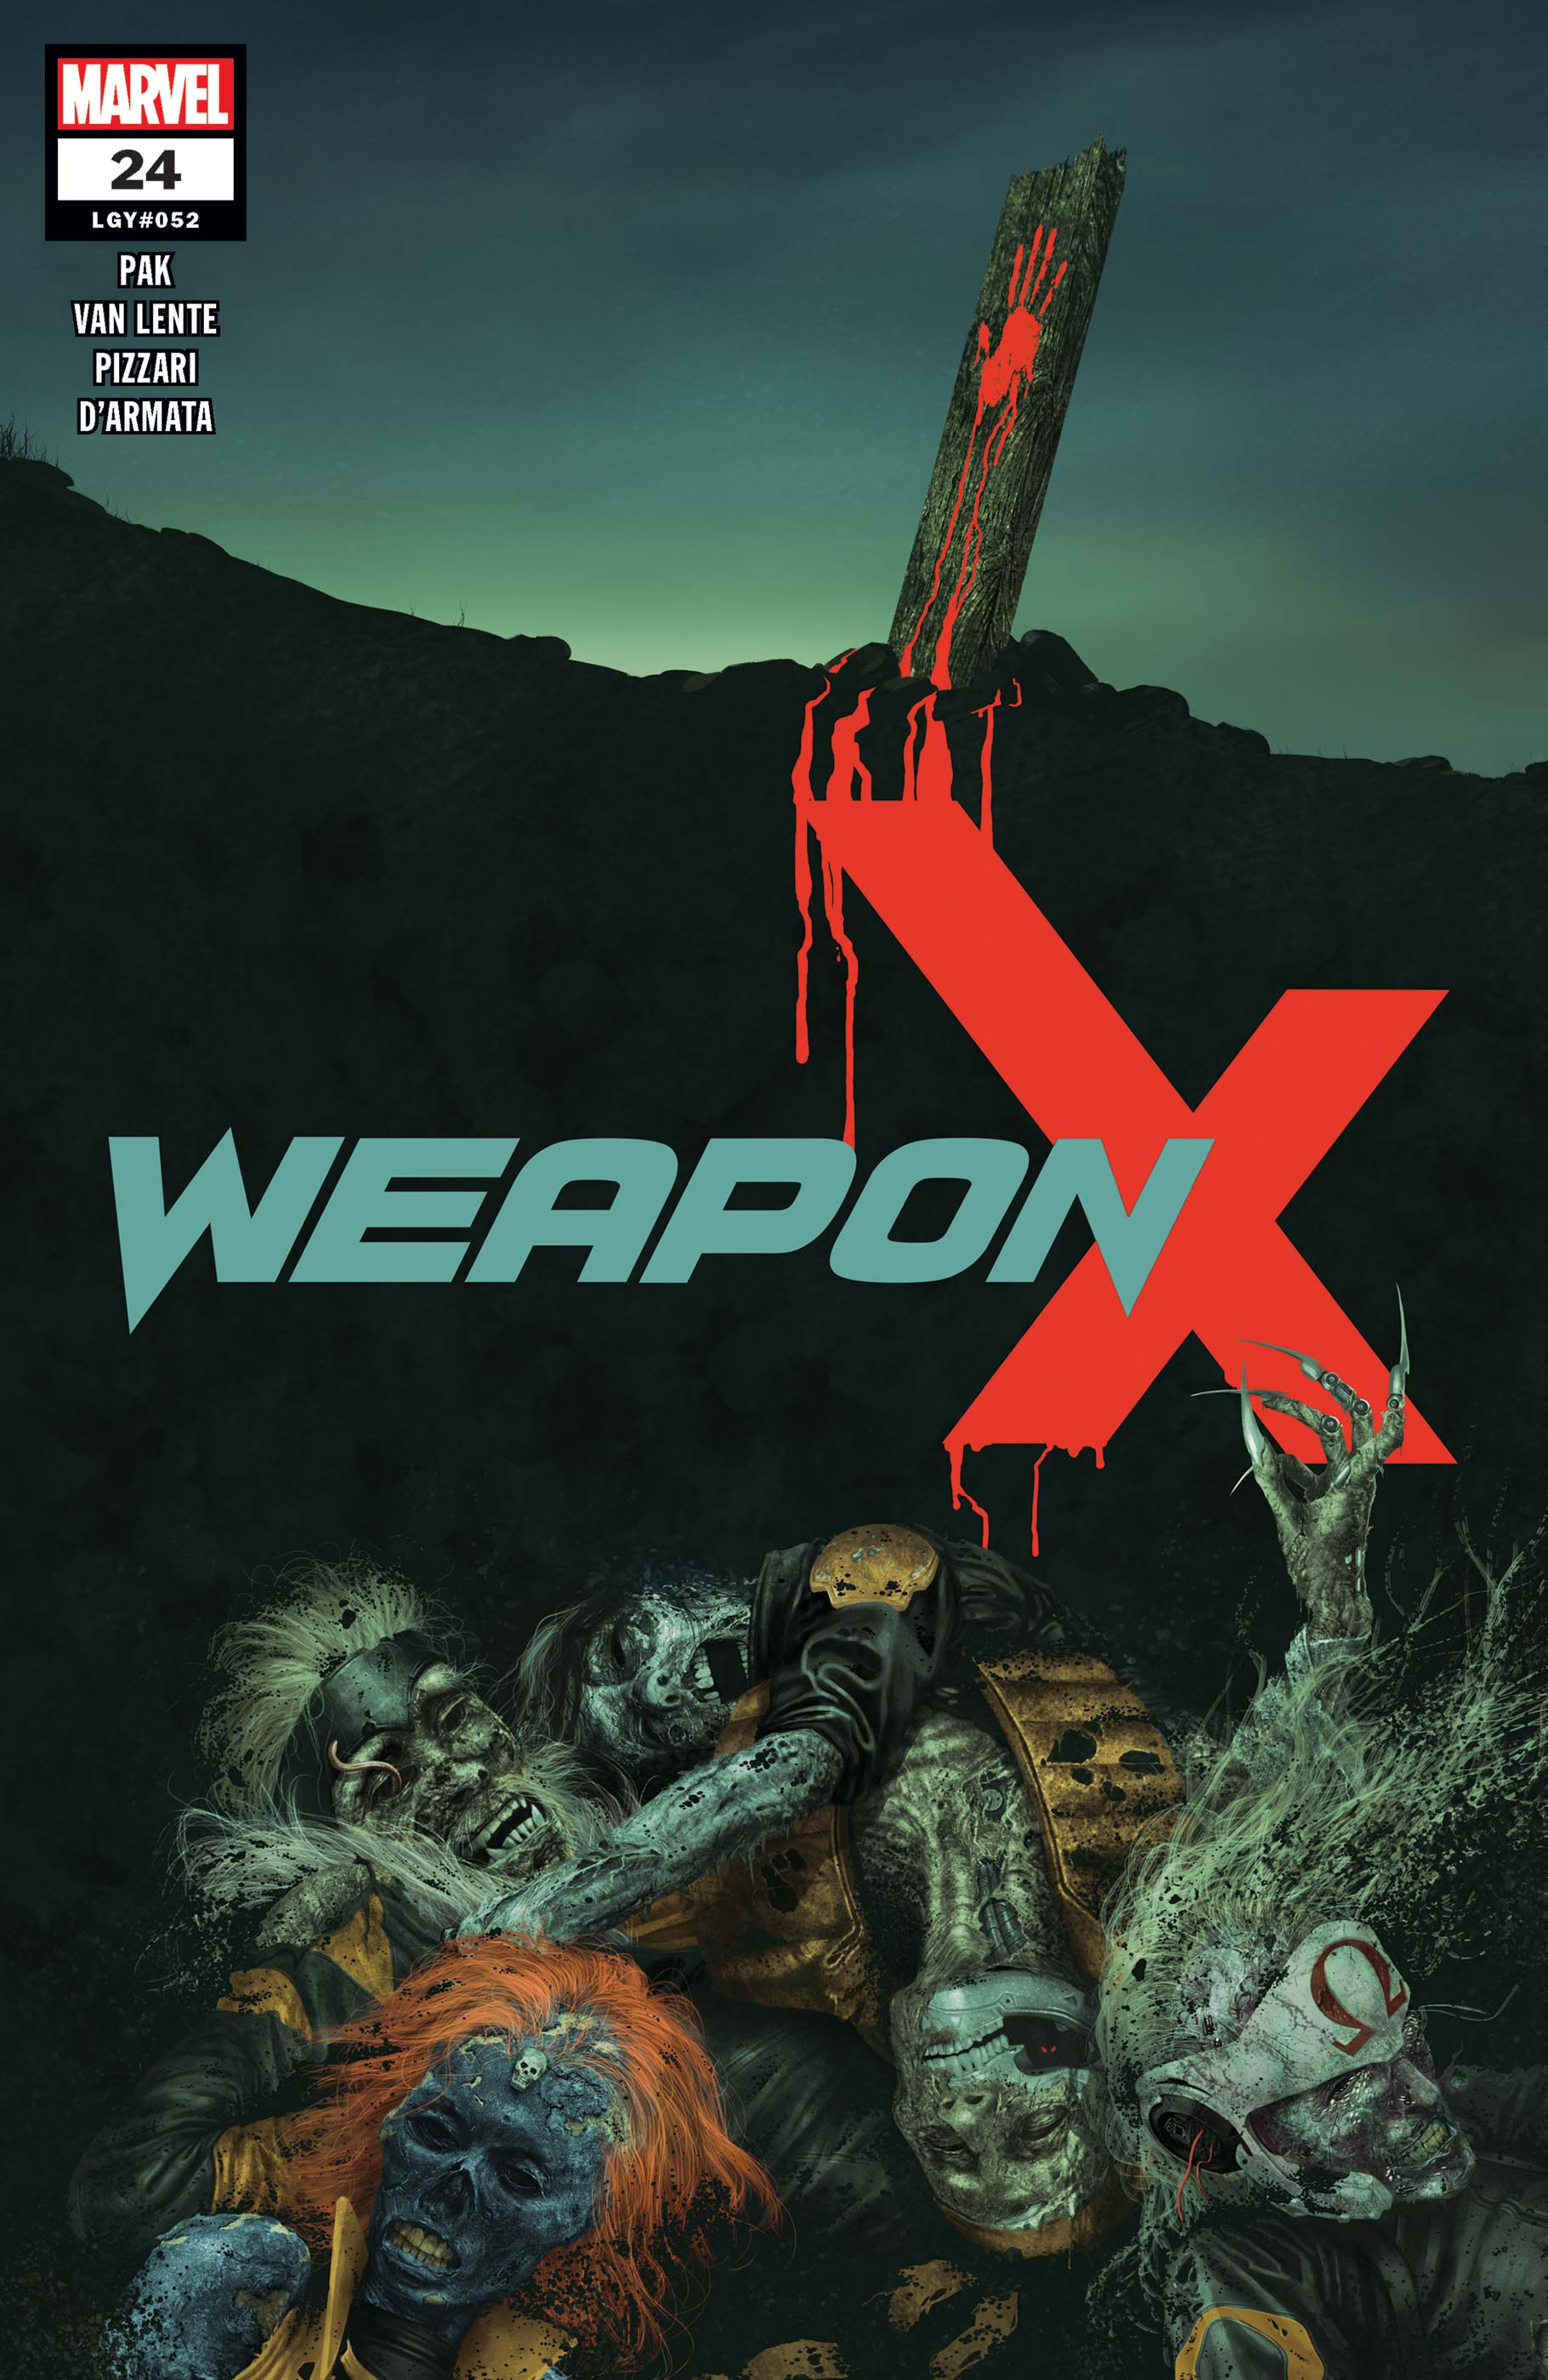 Weapon X (2017) #24